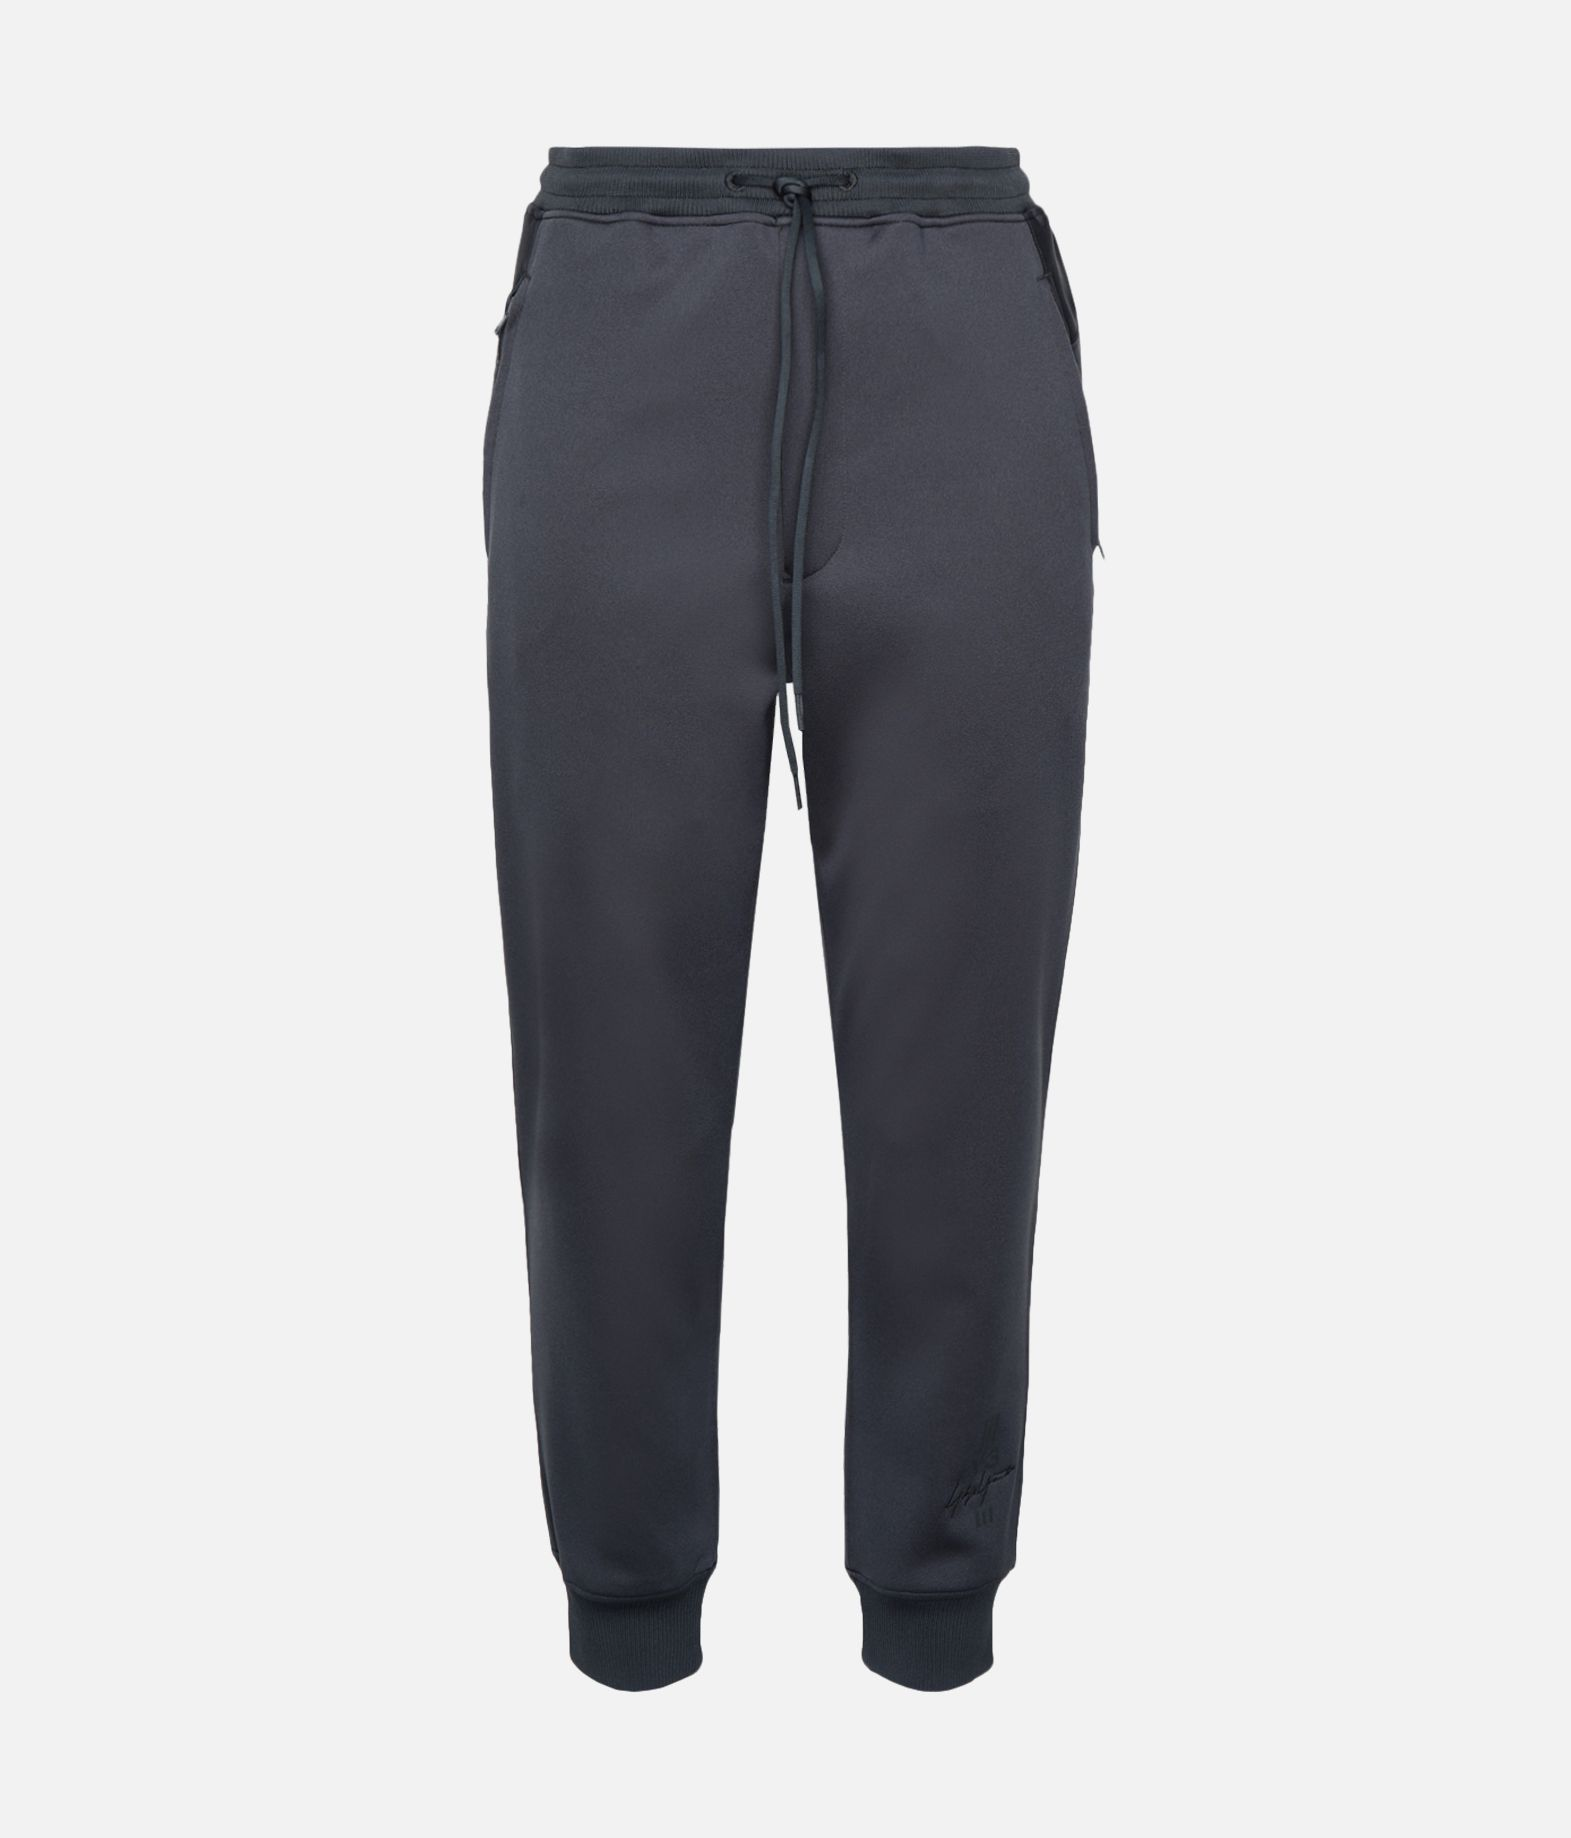 Y-3 Y-3 Classic Track Pants Sweatpants Woman f